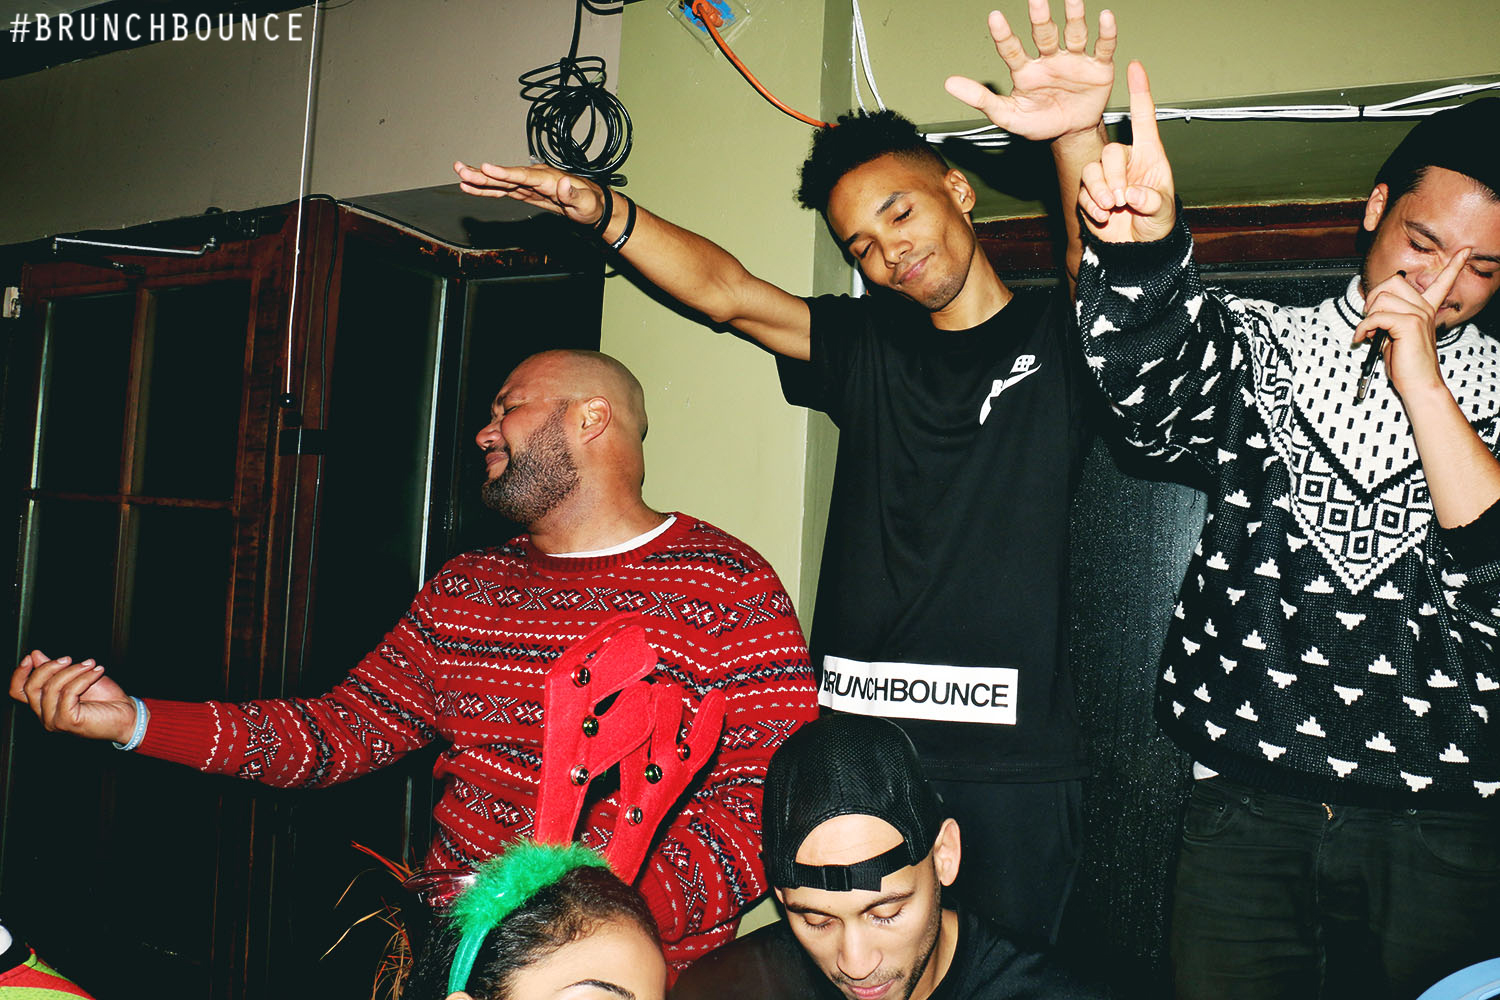 brunchbounce-ugly-christmas-sweater-party-122014_15895431240_o.jpg